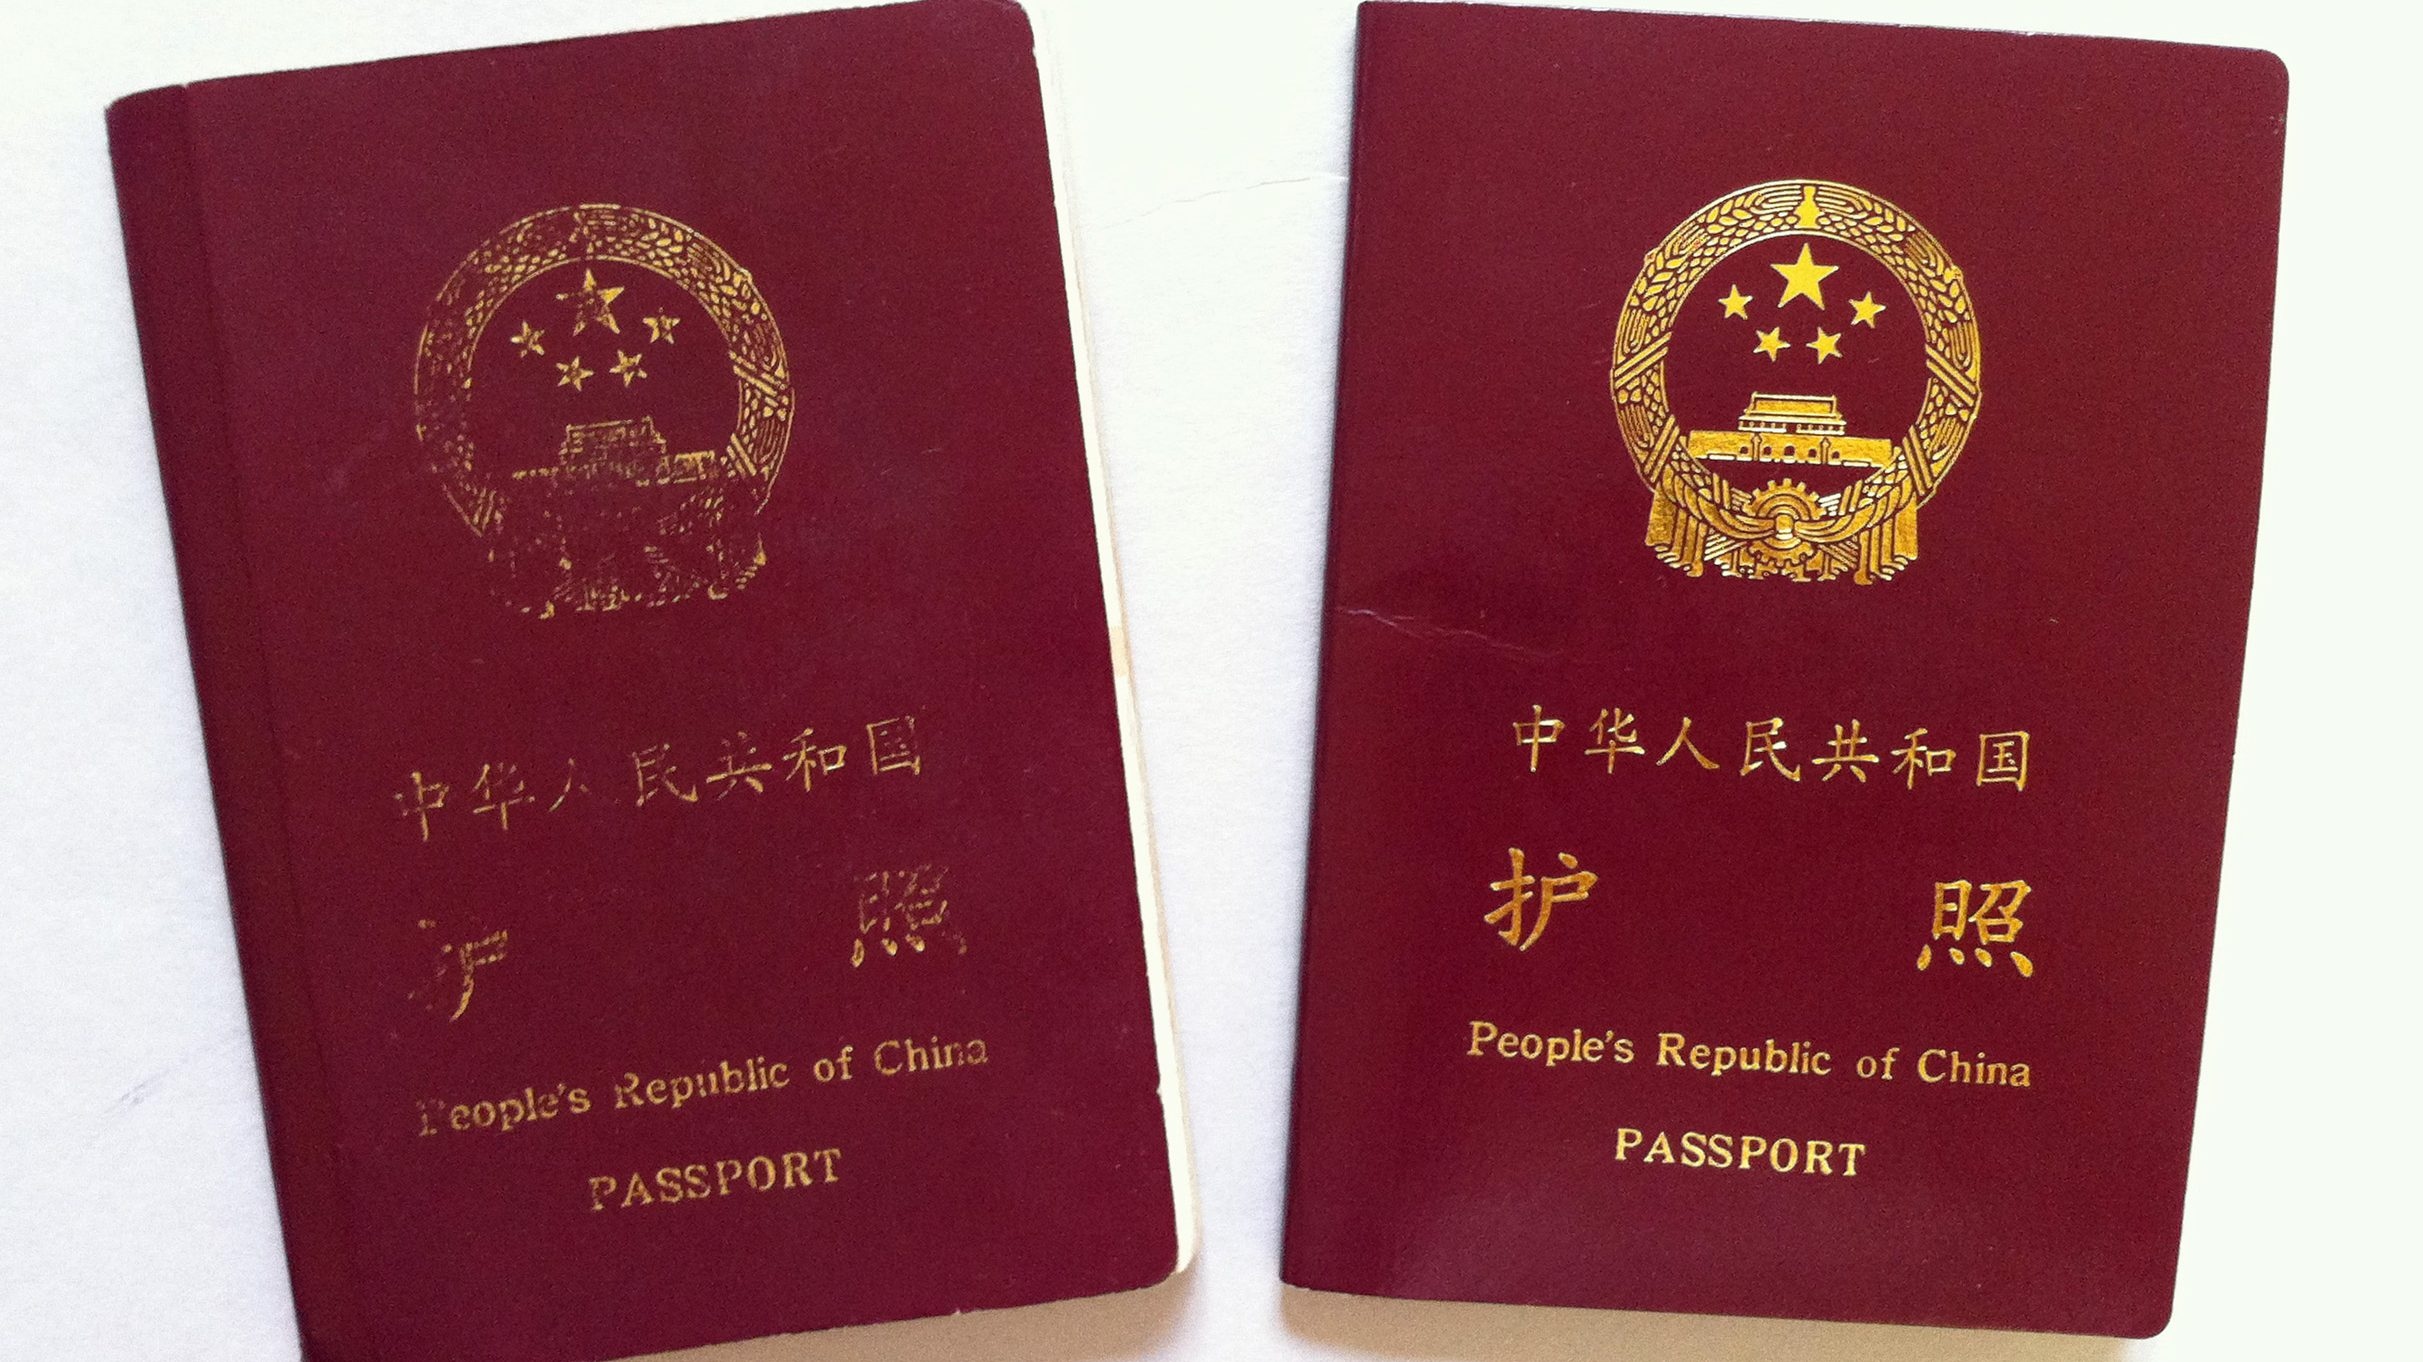 A photo made available on 23 November 2012 shows two old Chinese passports. On 23 November 2012, Taiwan protested to China over China's recently-issued e-passport showing pictures of a Taiwan lake and a cliff, but calling them Chinese scenic spots. Taiwan said China's move 'is a provocation and has undermined the basis for mutual trust.' Press reports said Vietnam and the Philippines have also protested to China as the e-passport defines South China Sea as Chinese territory, though some parts of it are claimed by Hanoi and Manila.